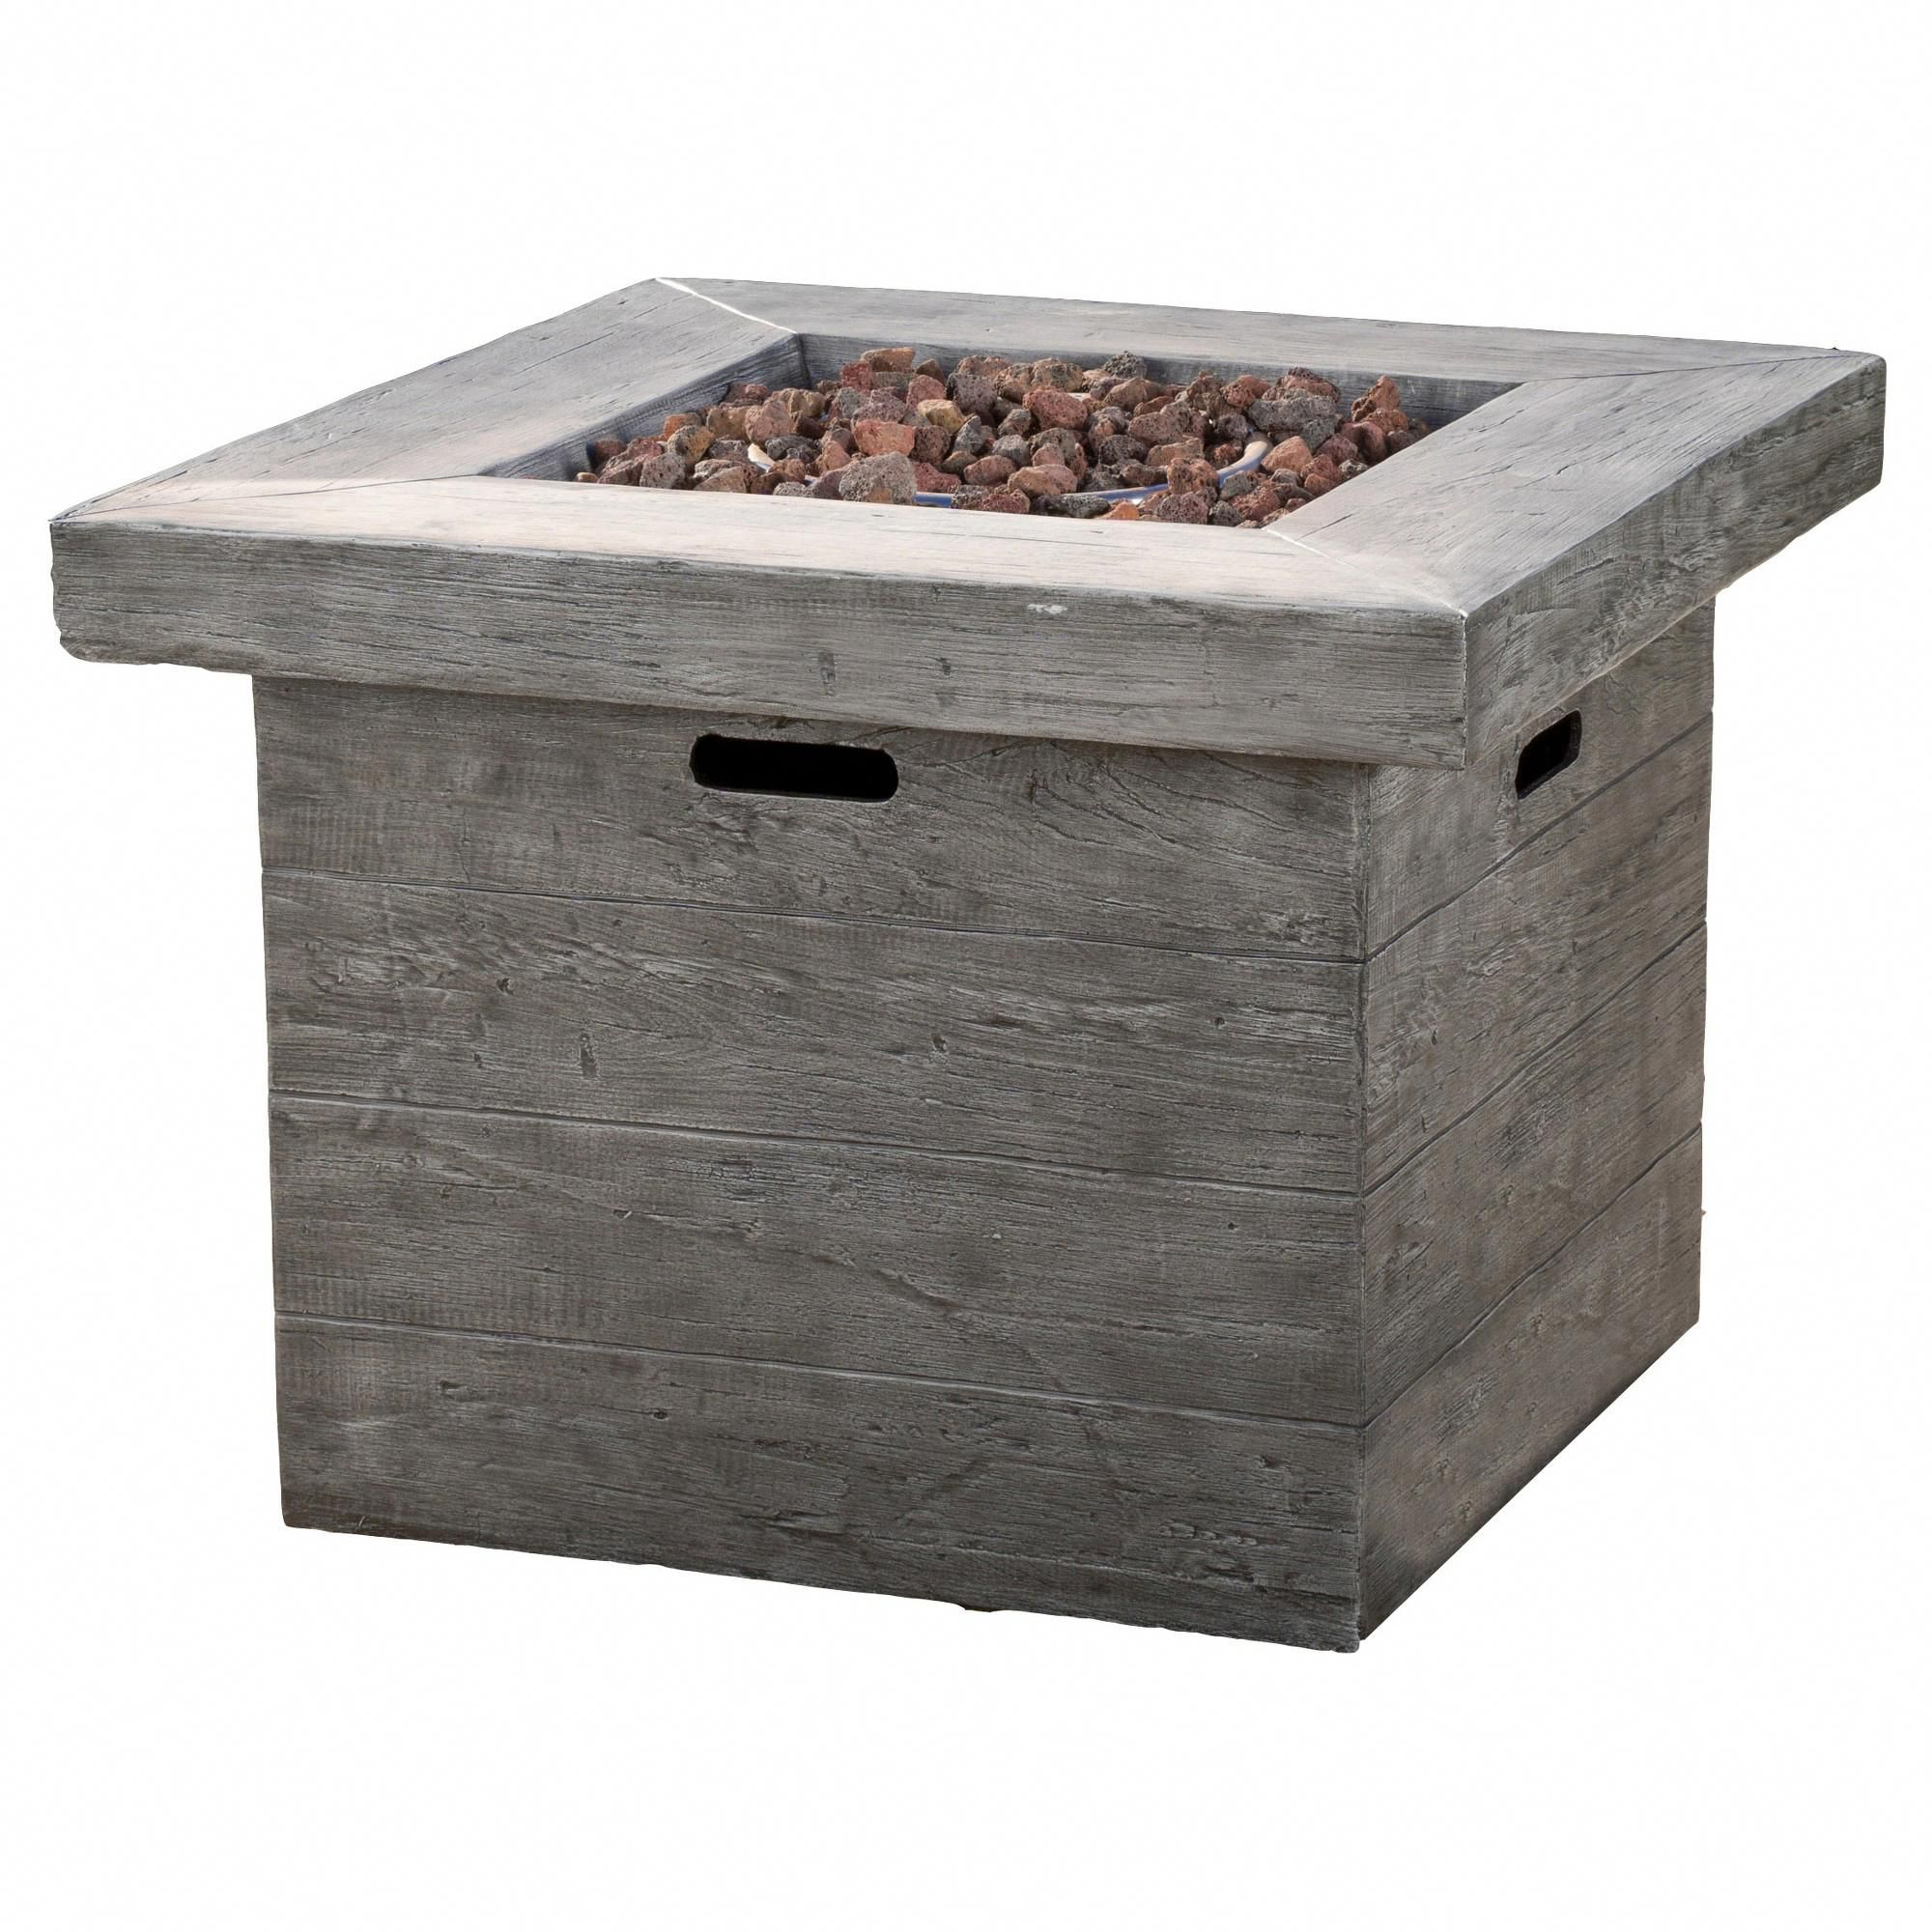 Receive Fantastic Suggestions On Quot Outdoor Fire Pit Designs